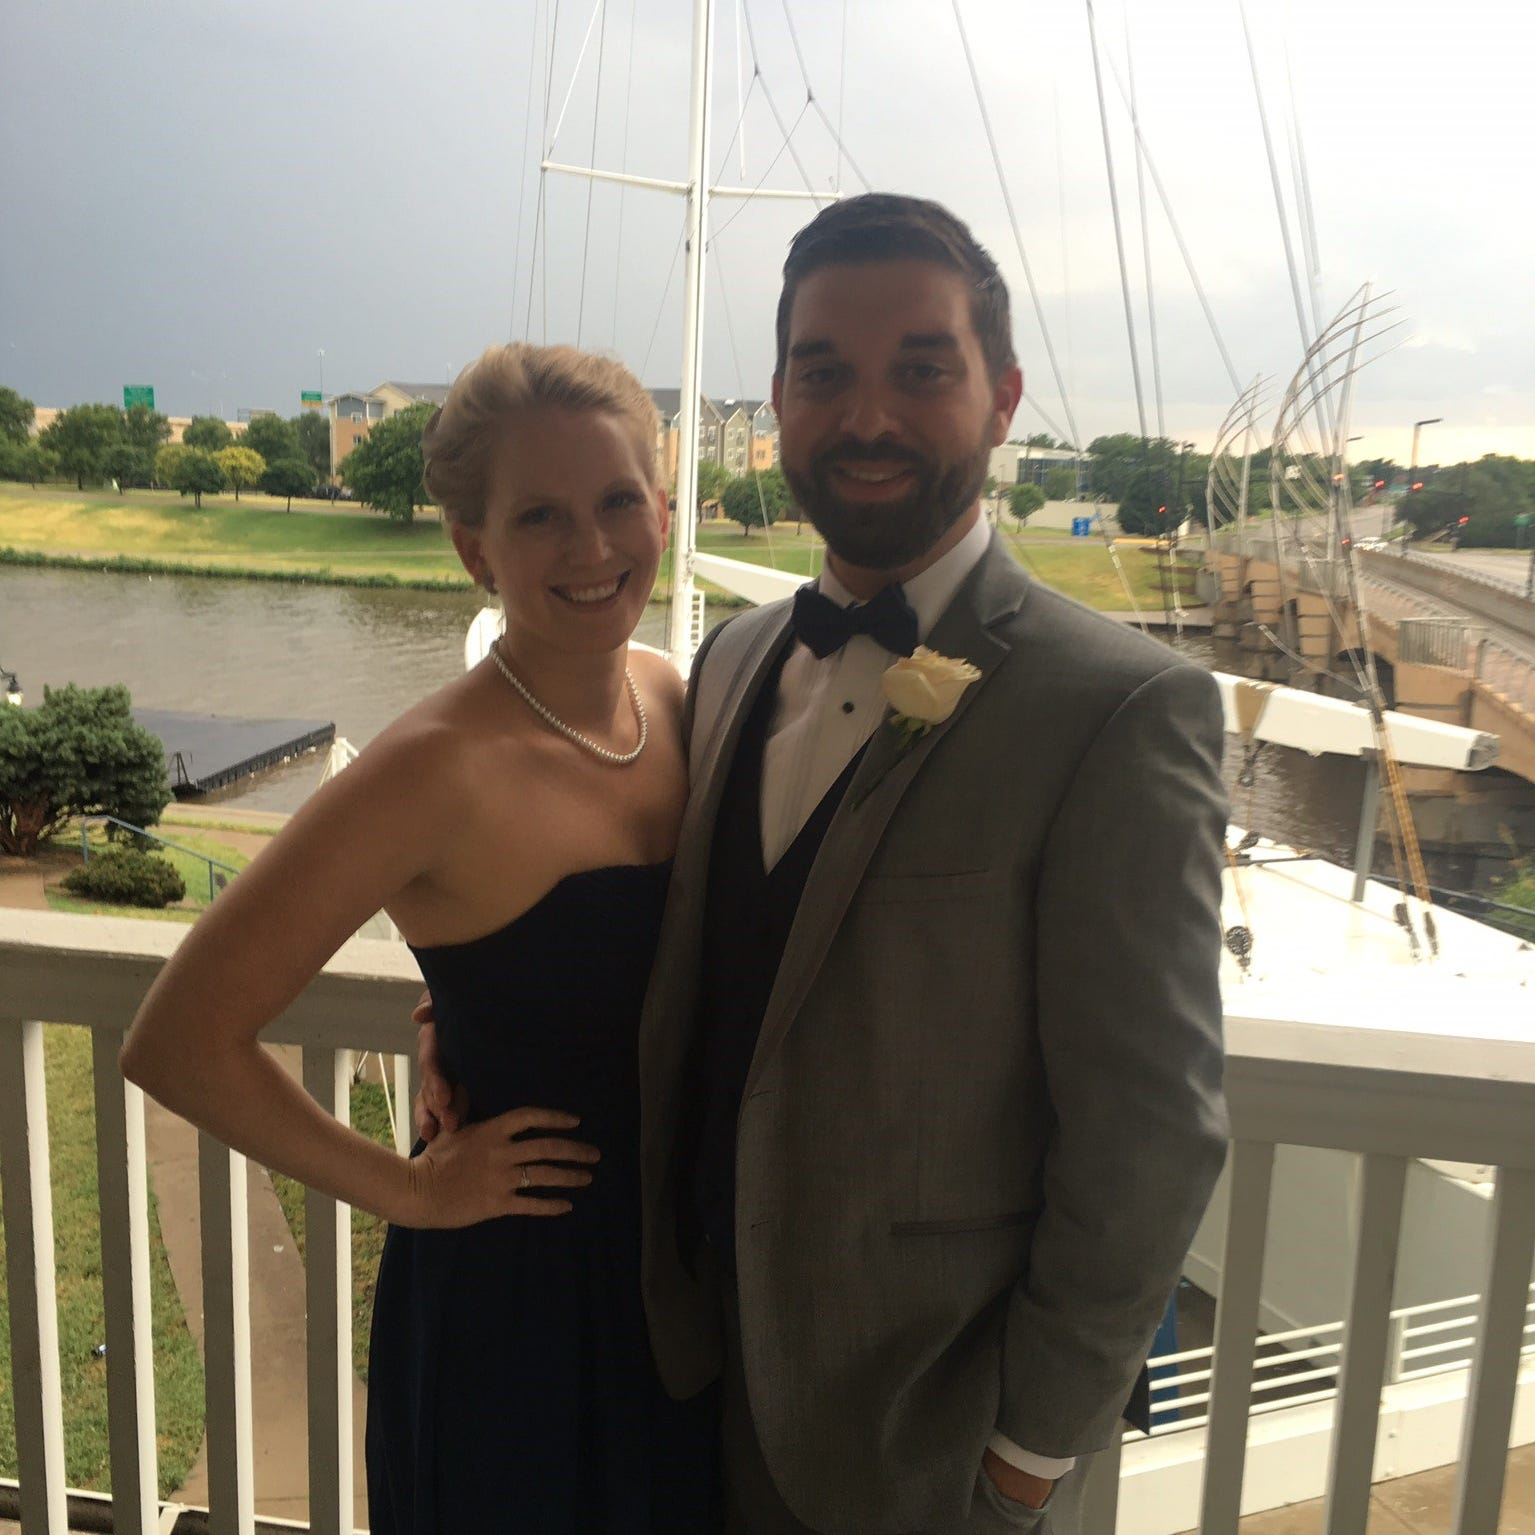 Woman's wedding plans saved with help from Pensacola ferry operator